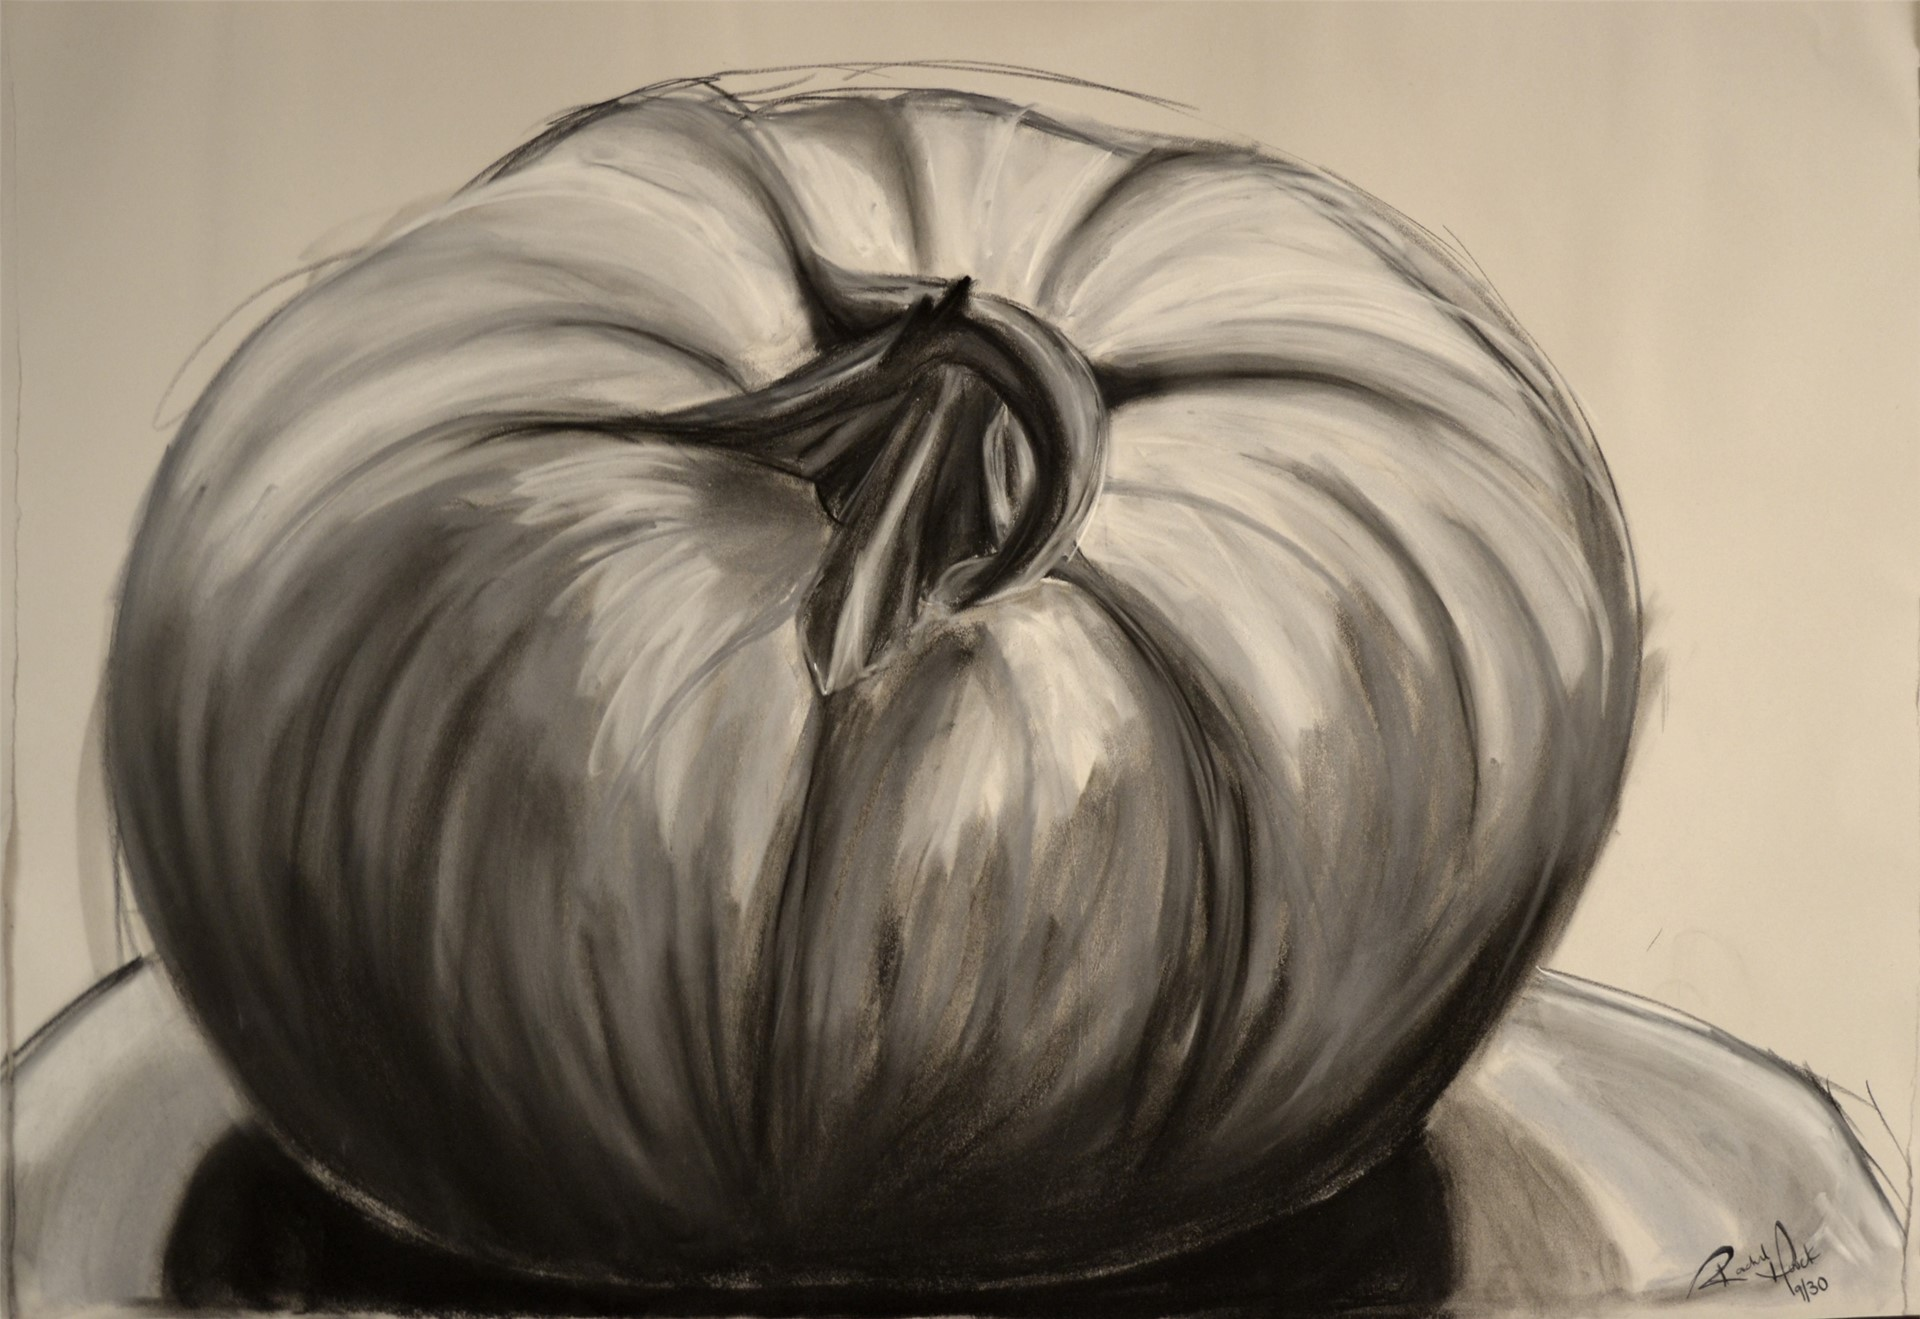 RACHEL HOUCK, Pumpkin, charcoal &pastel on newsprint, 24 x 36, 2014